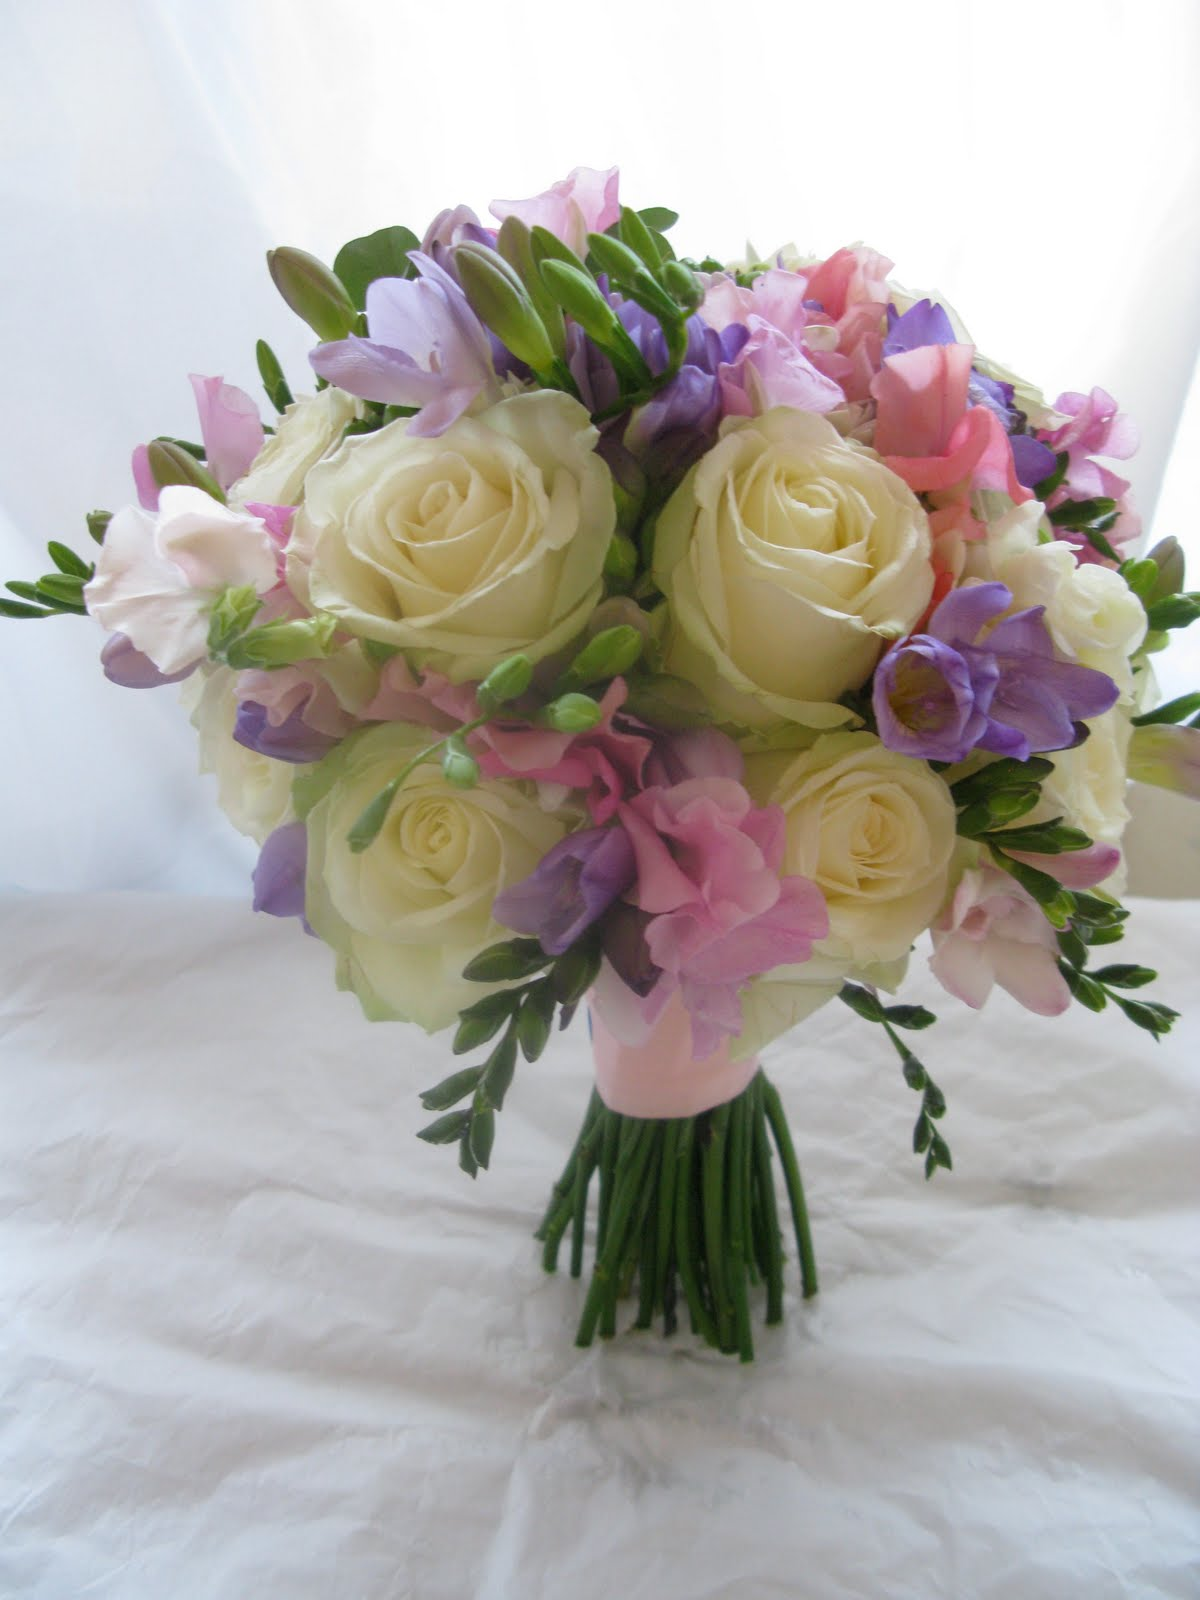 Sweet pea bouquets - wedding planning discussion forums